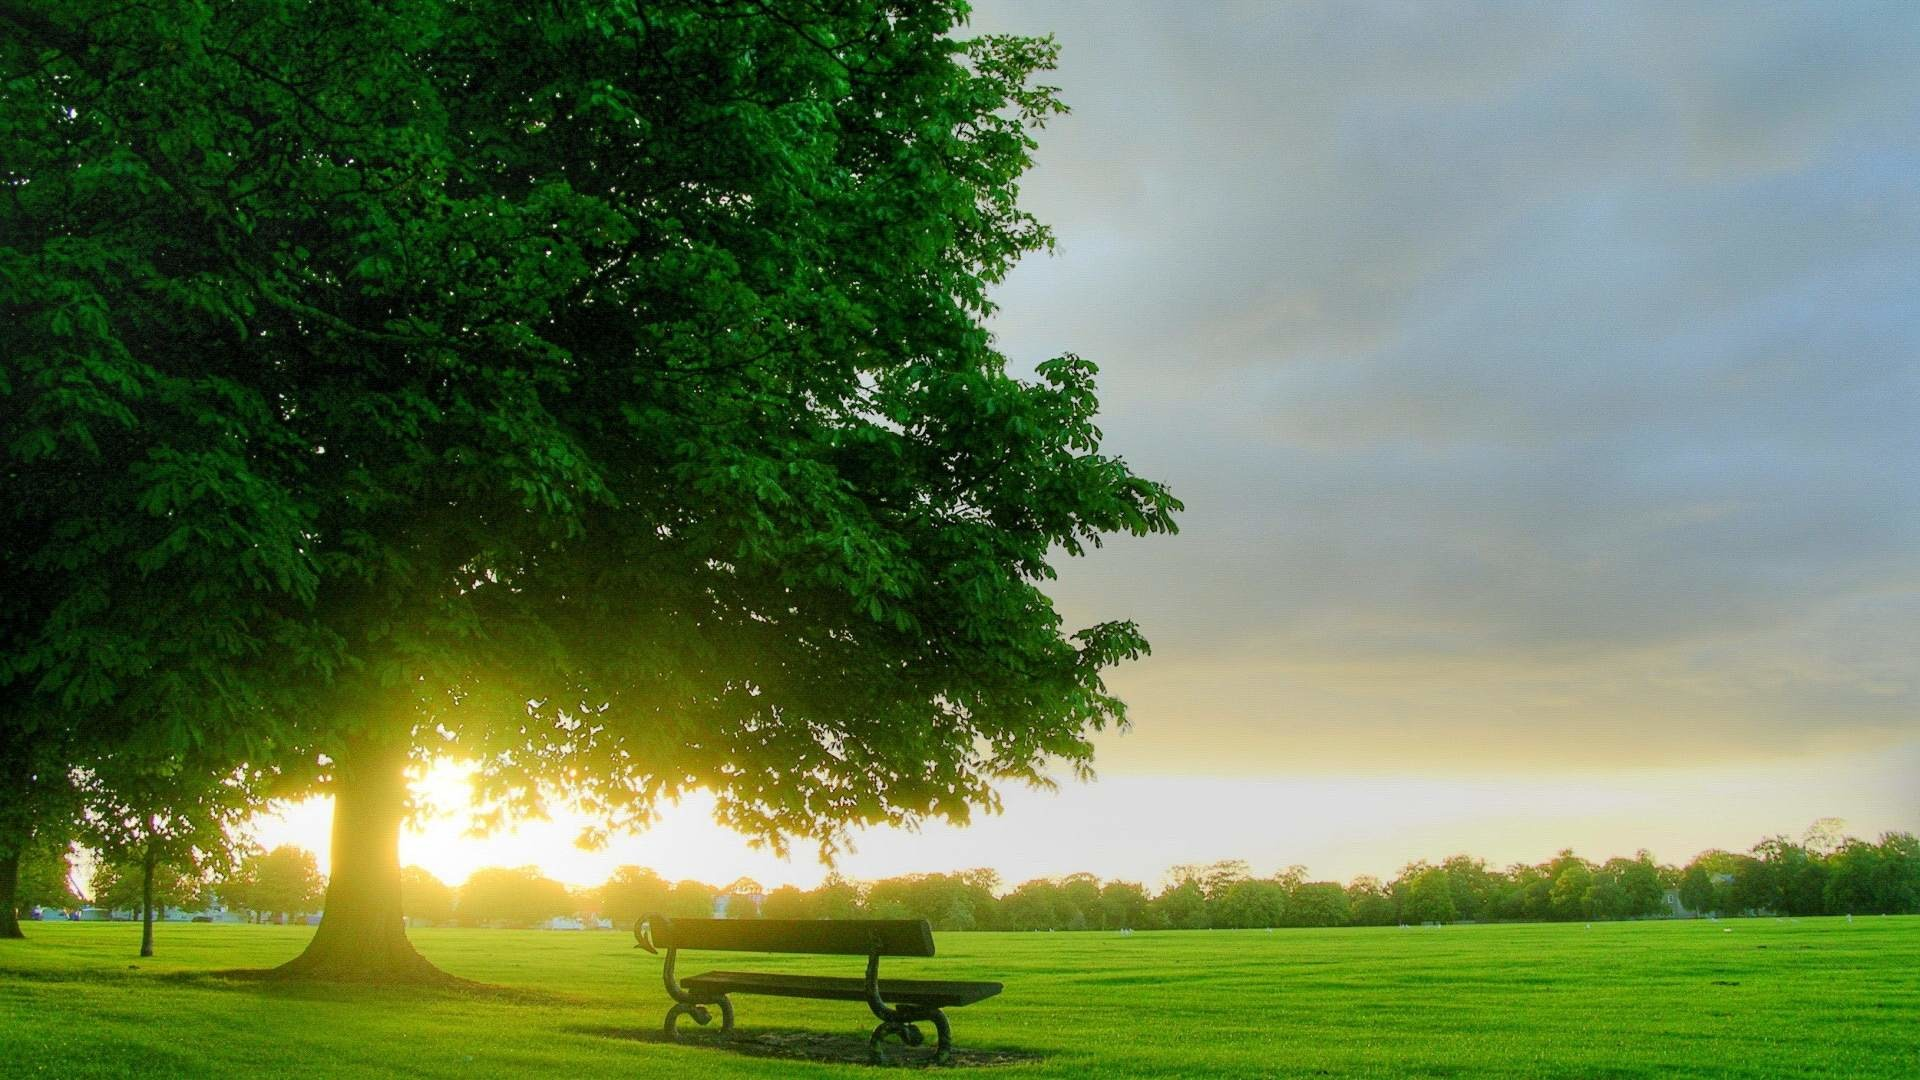 Tree Background Wallpaper (58+ images)